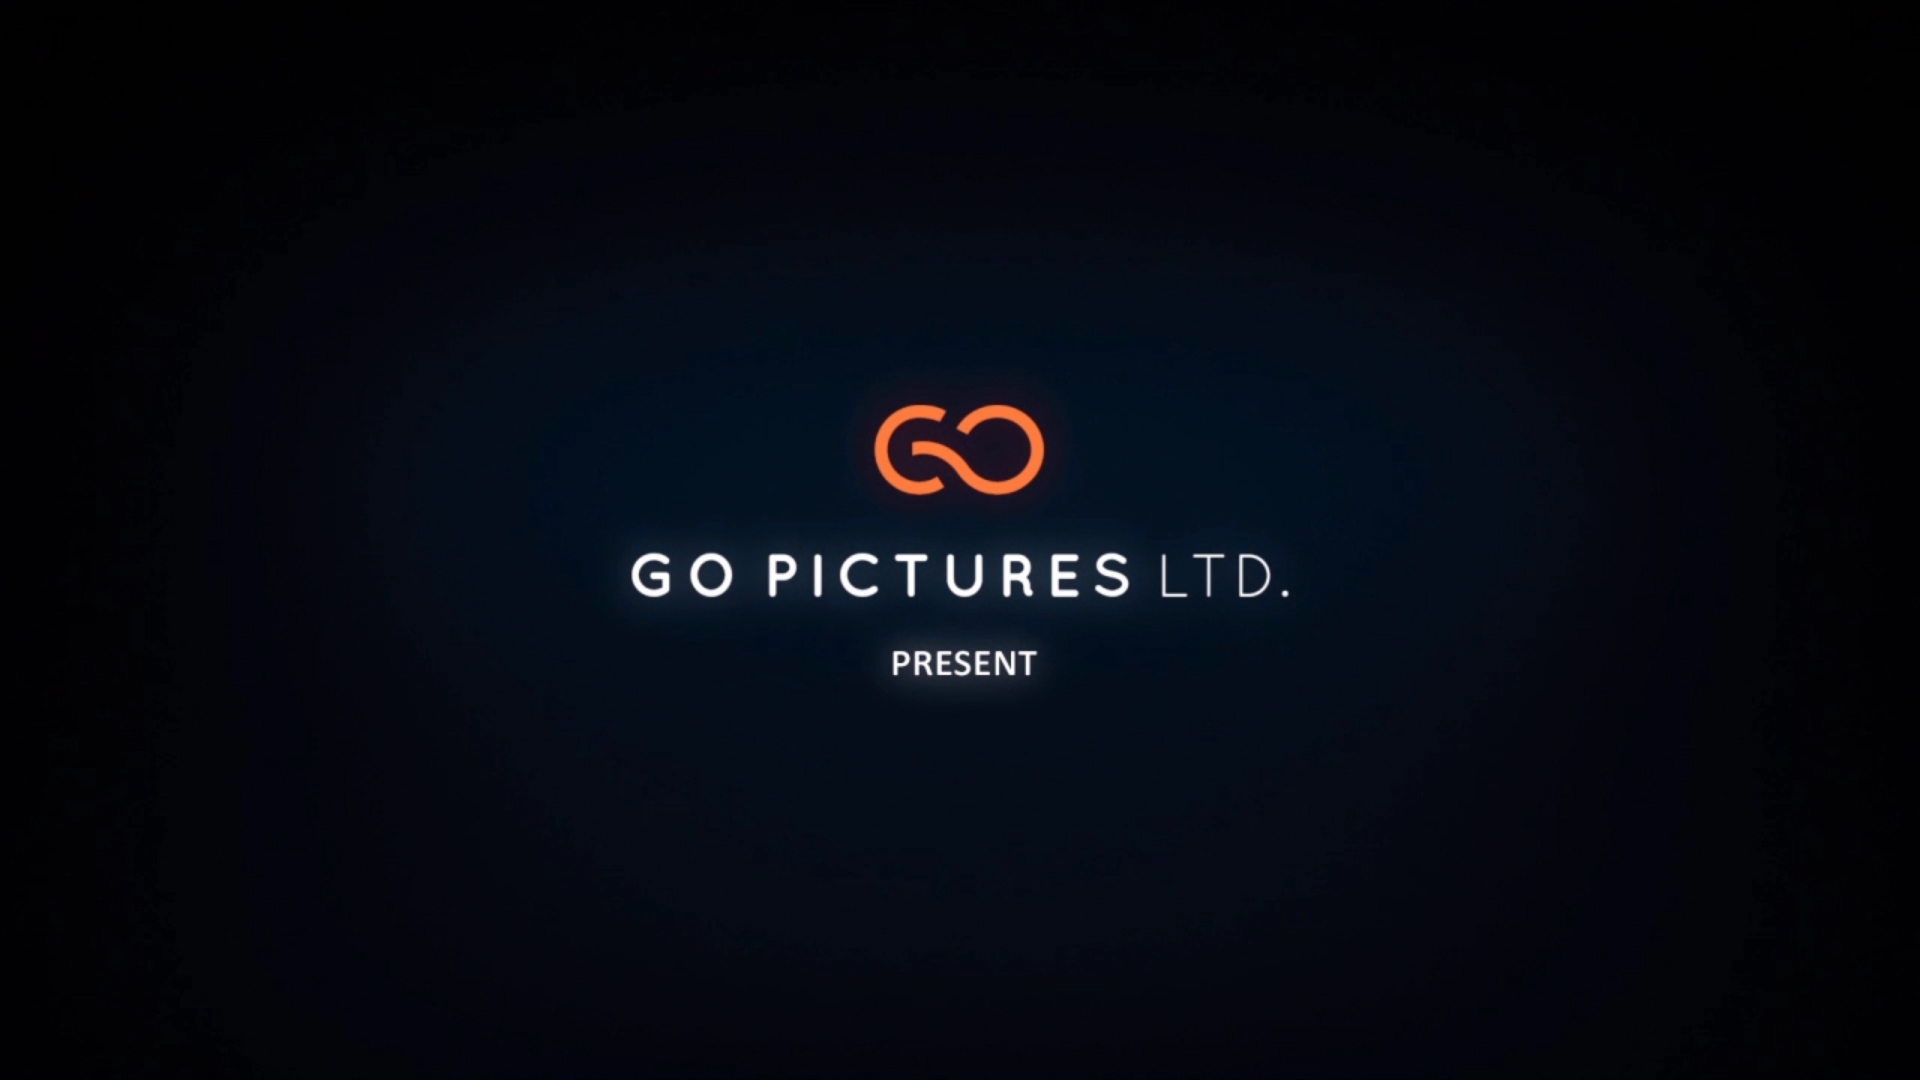 GO Pictures Showreel 2015-2016